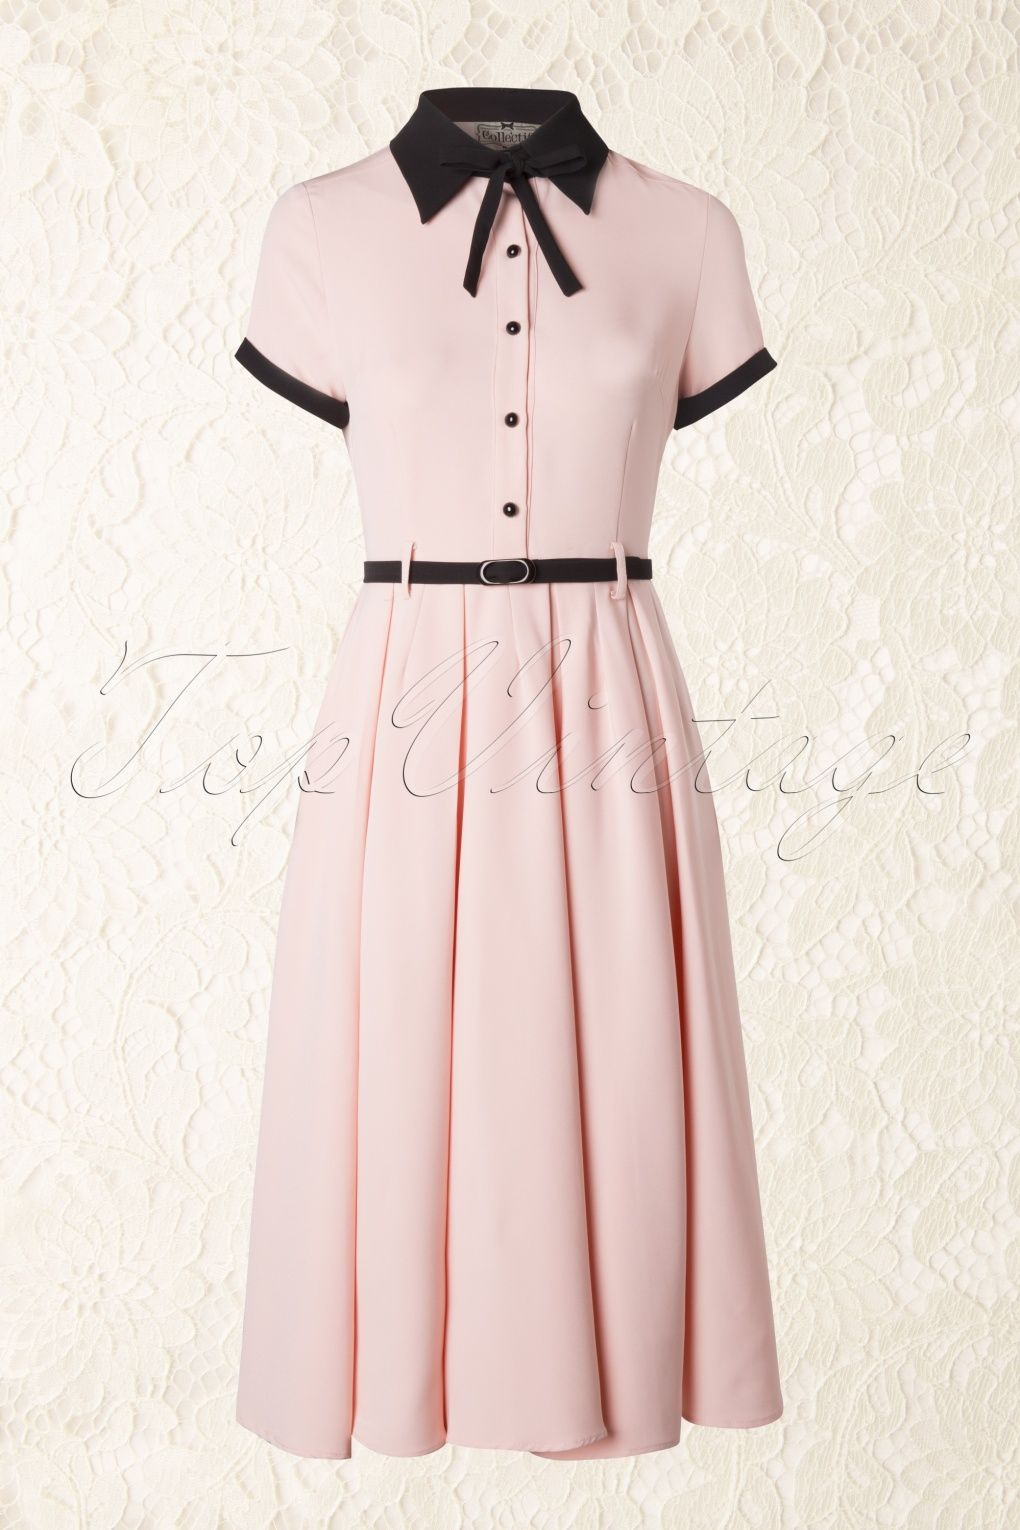 e6680f50b Collectif Clothing - 50s Cynthia Doll Dress in Pink Vintage Dresses 50s,  Old Dresses,